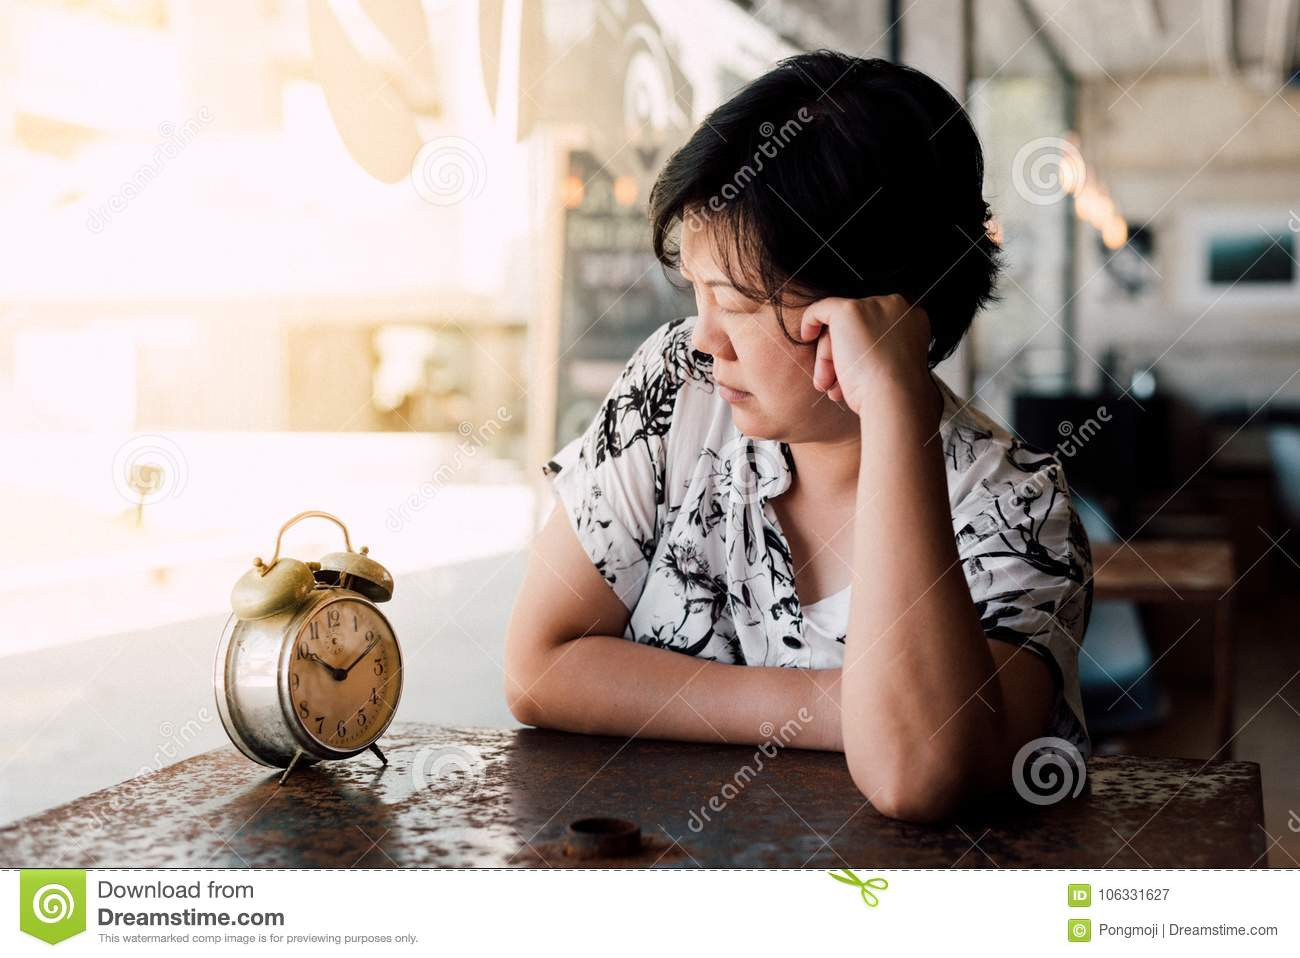 Asian Woman Waiting In Coffee Shop Cafe With Clock Stock